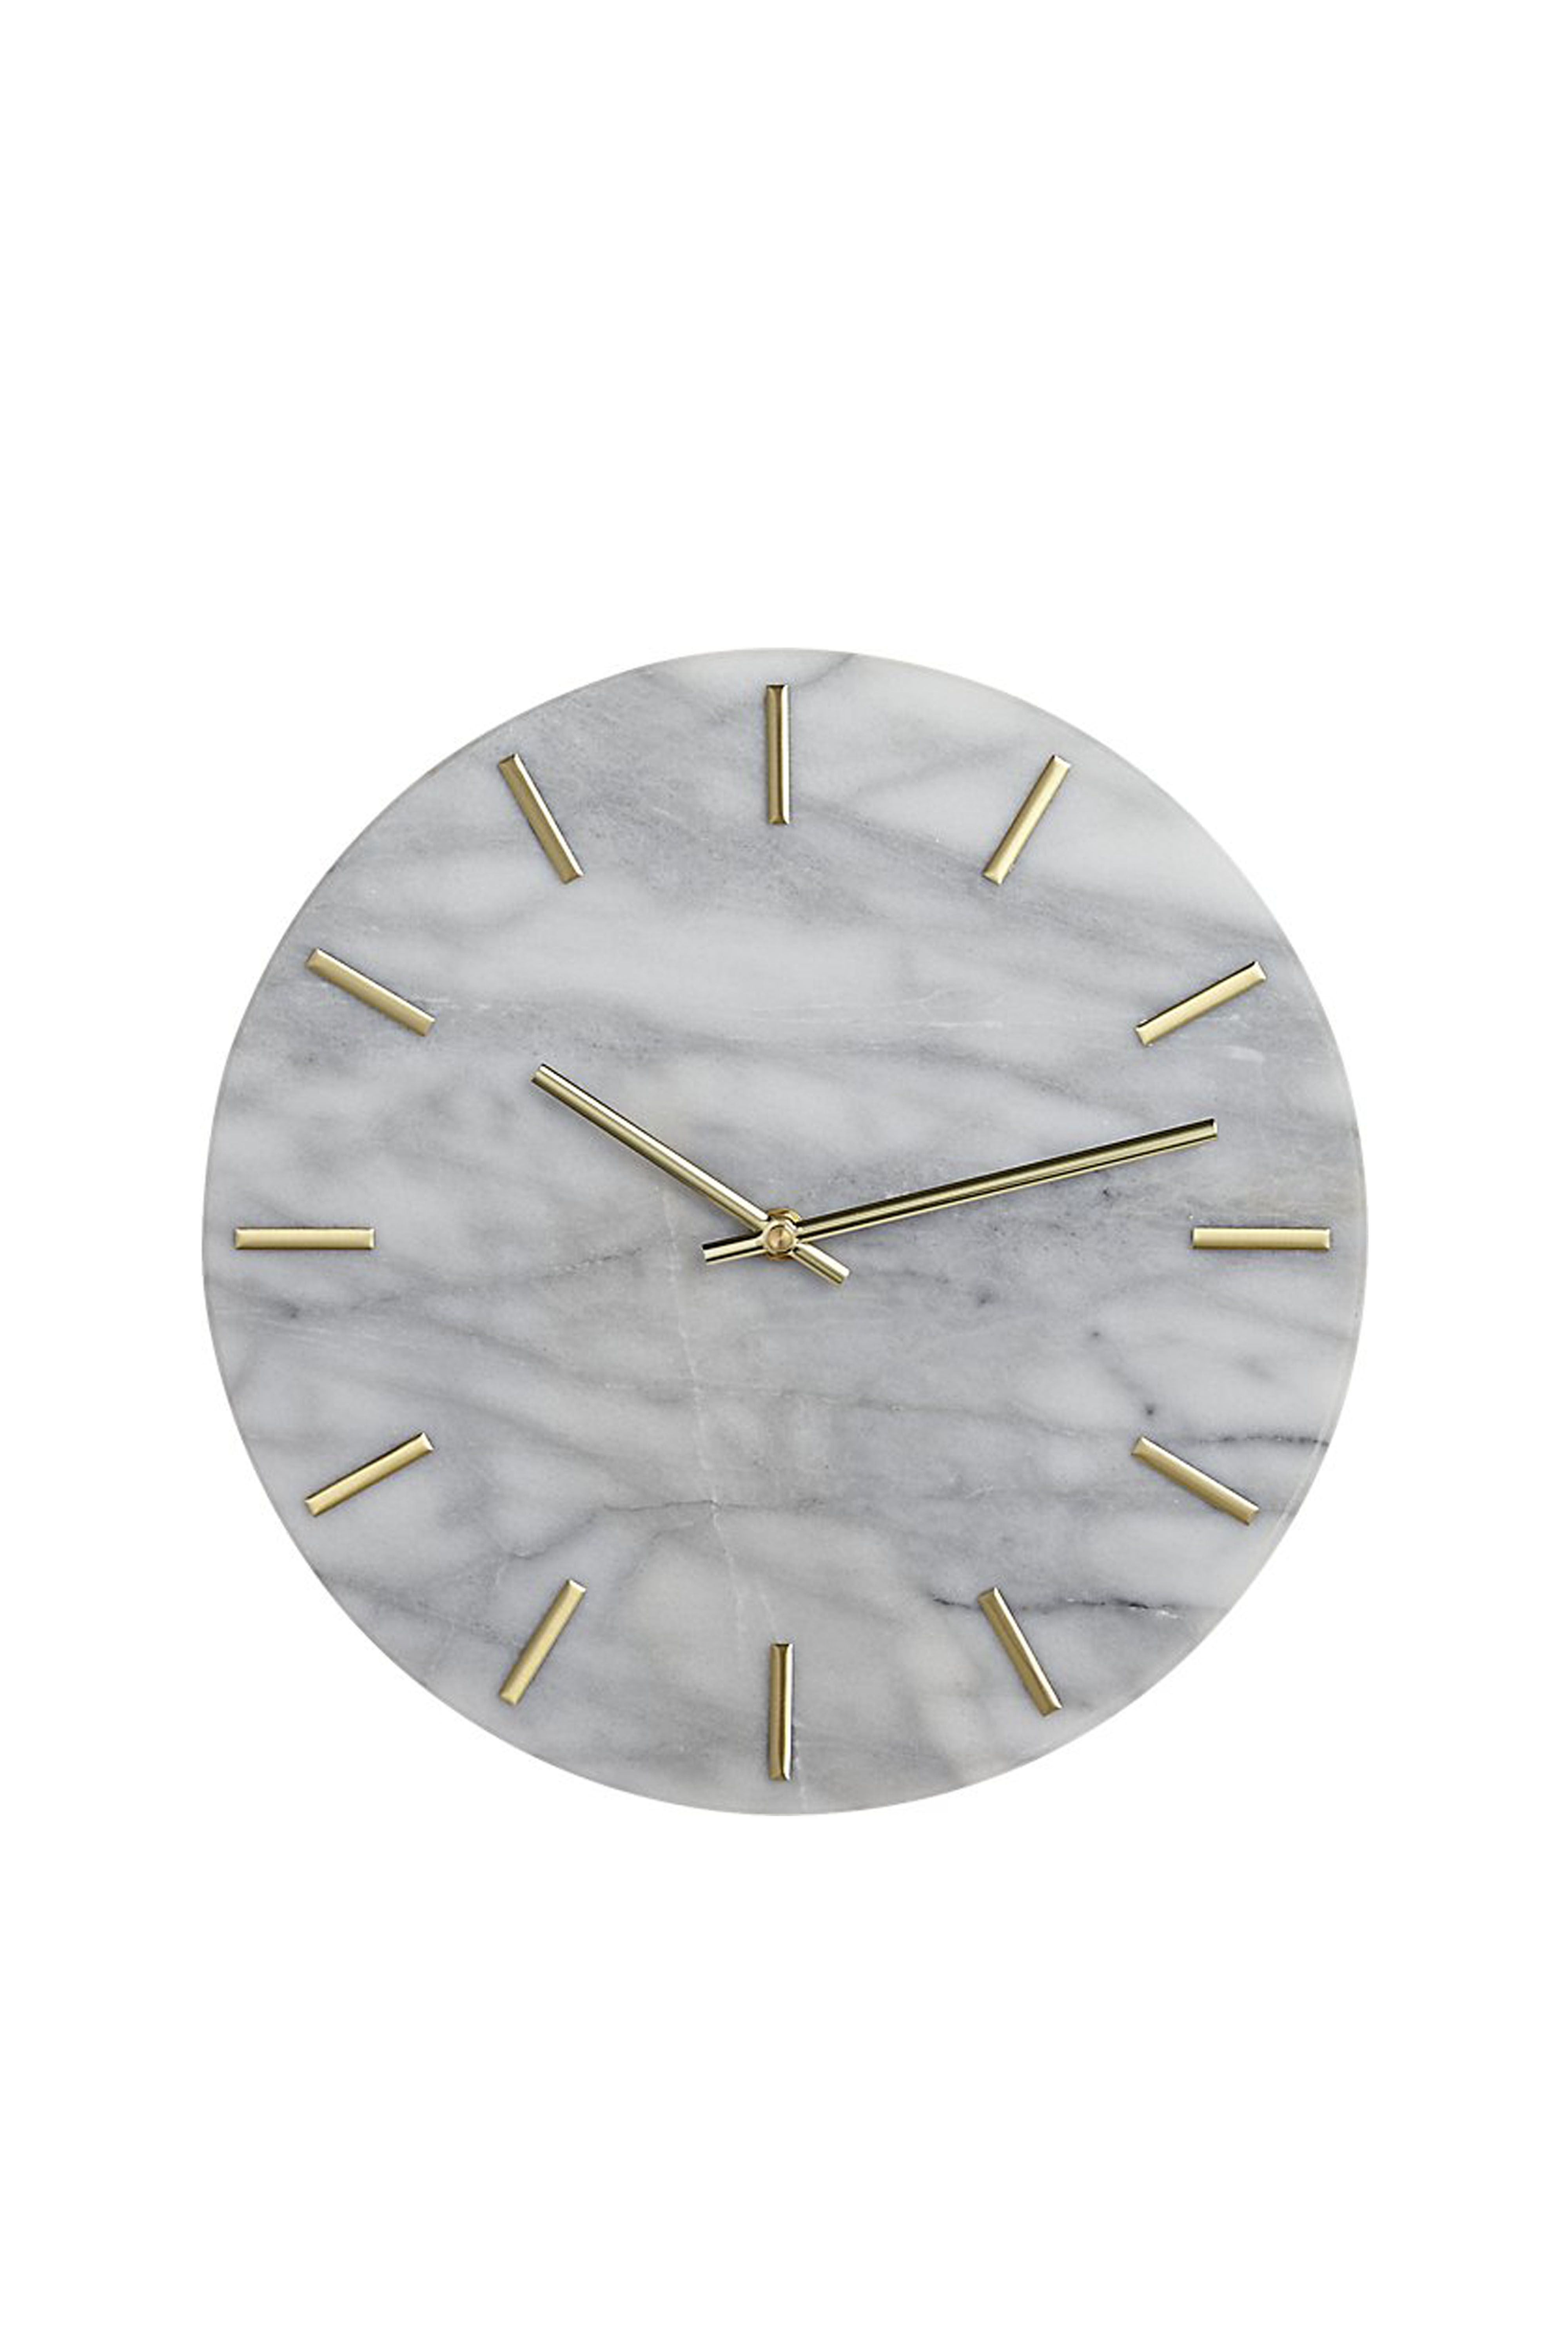 15 Best Kitchen Wall Clocks Stylish Clock Ideas For Kitchens